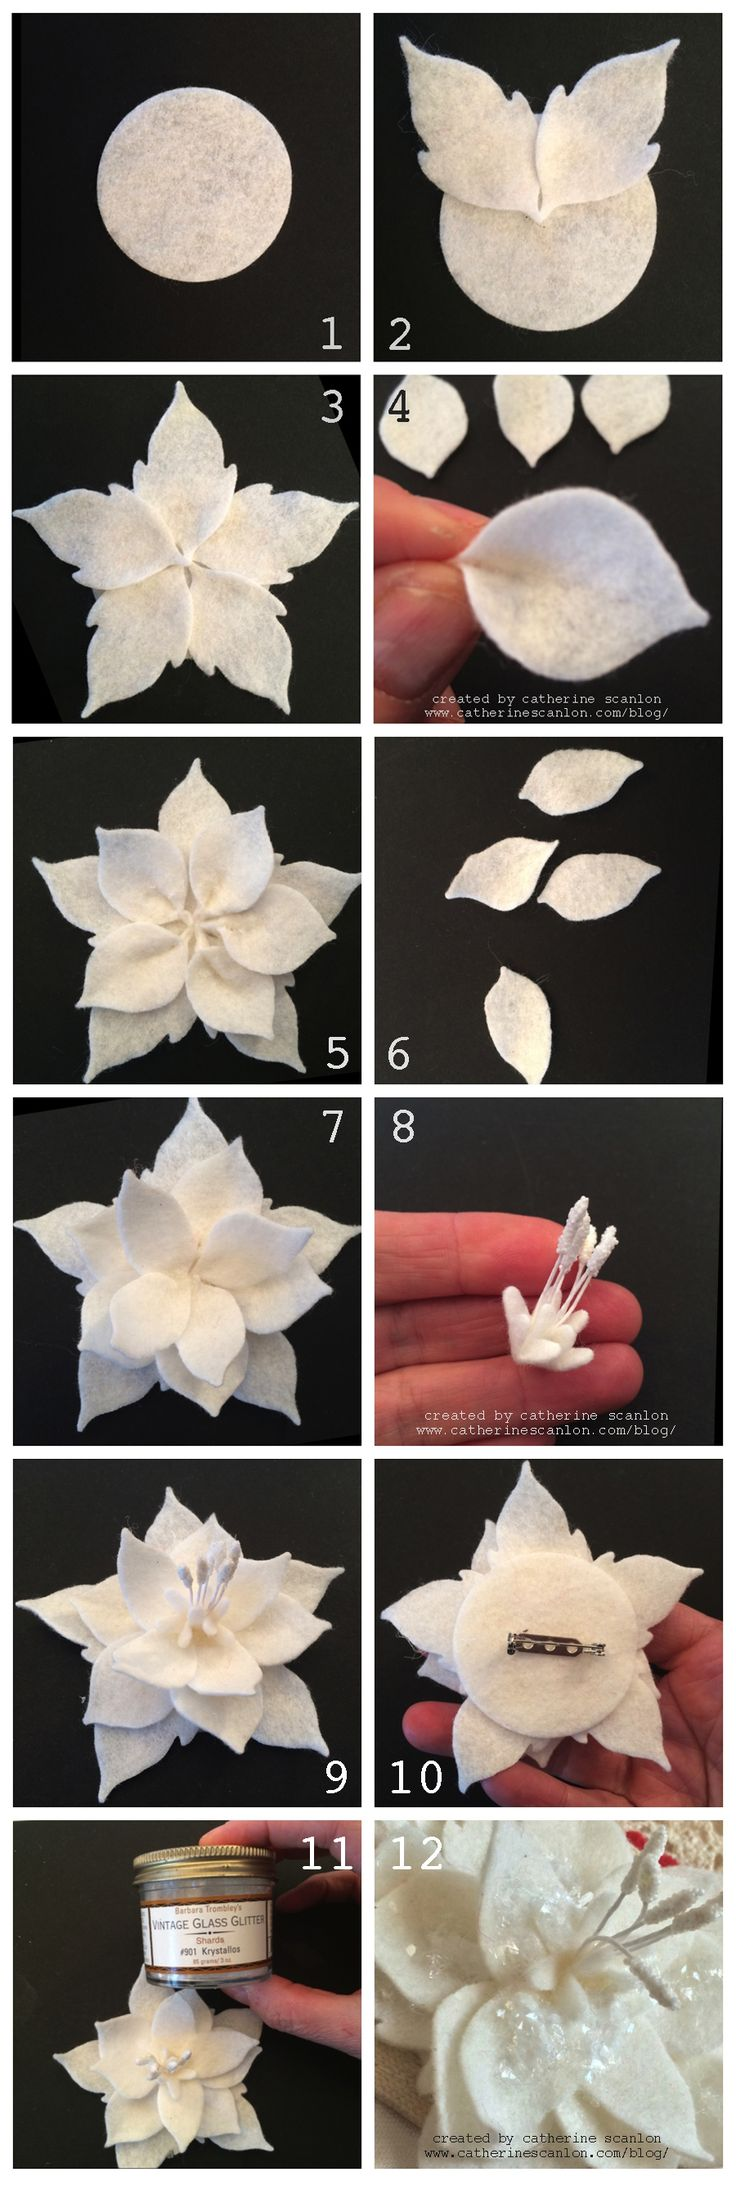 Wool Felt Poinsettia Pin by Catherine Scanlon on the Sizzix blog!  These would make great gifts!